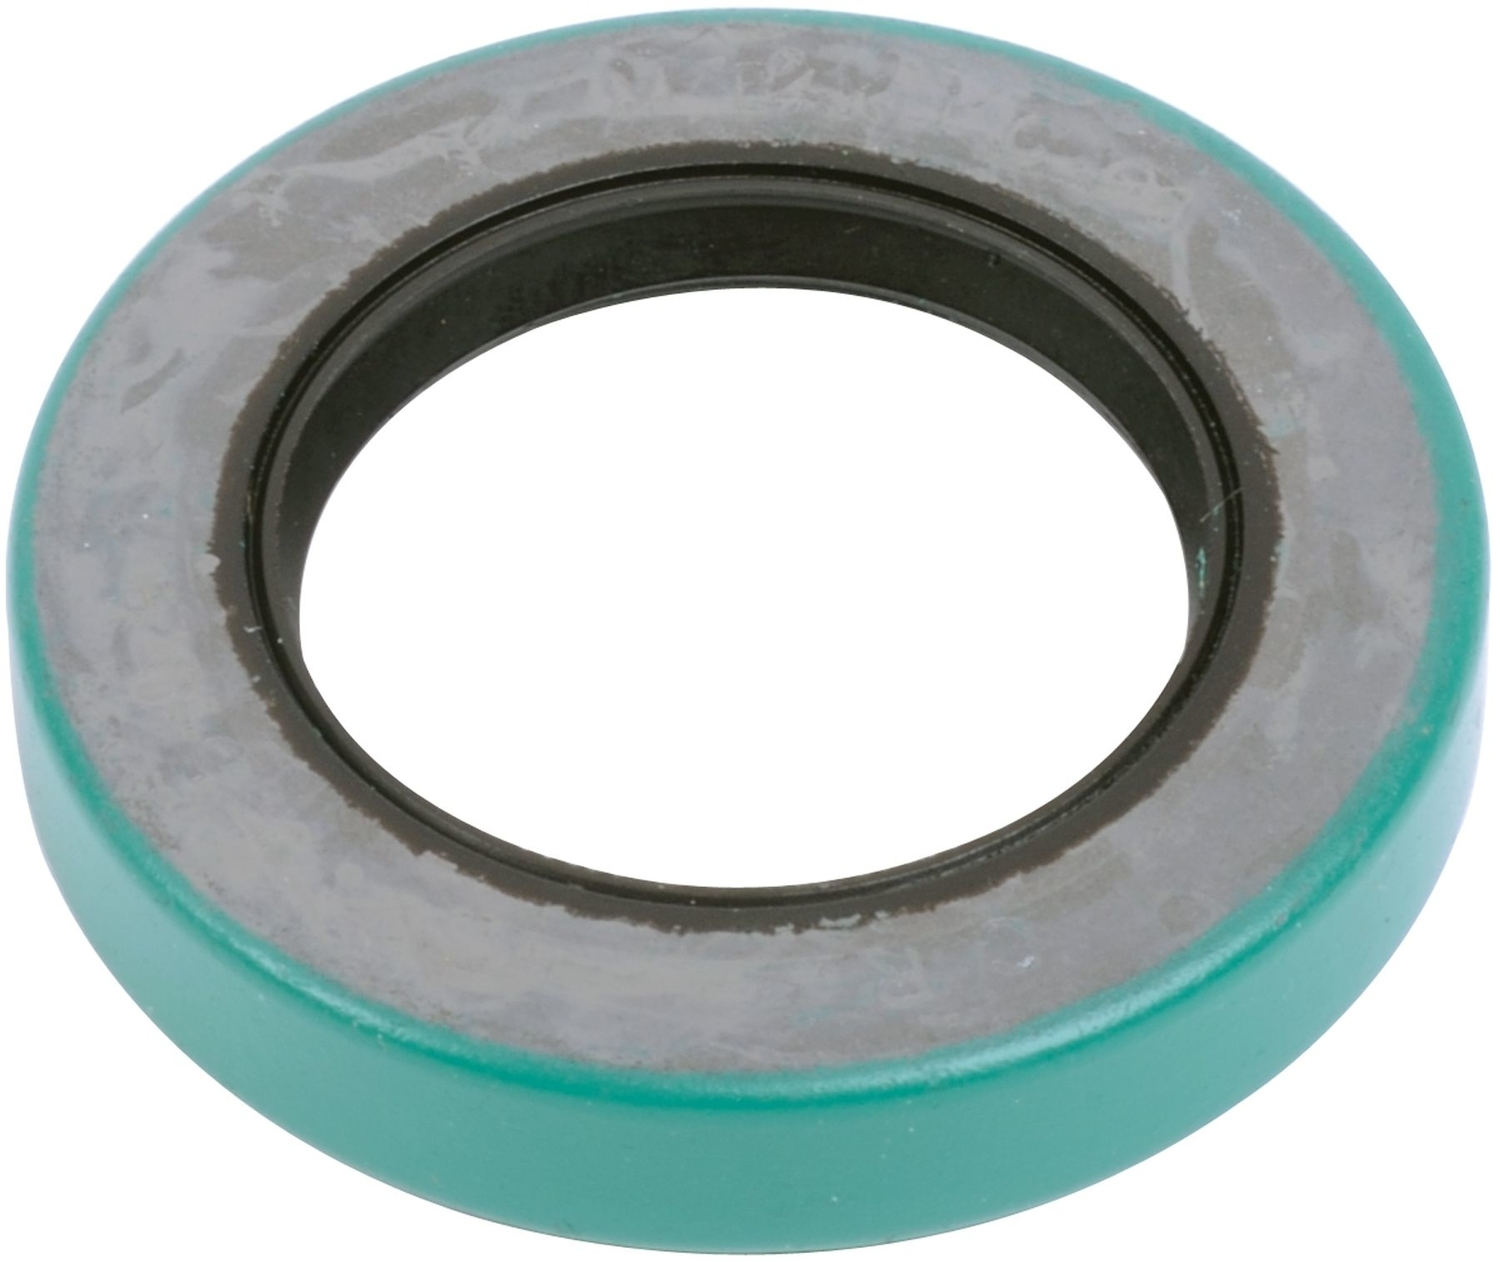 SKF (CHICAGO RAWHIDE) - Manual Trans Output Shaft Seal - SKF 15041